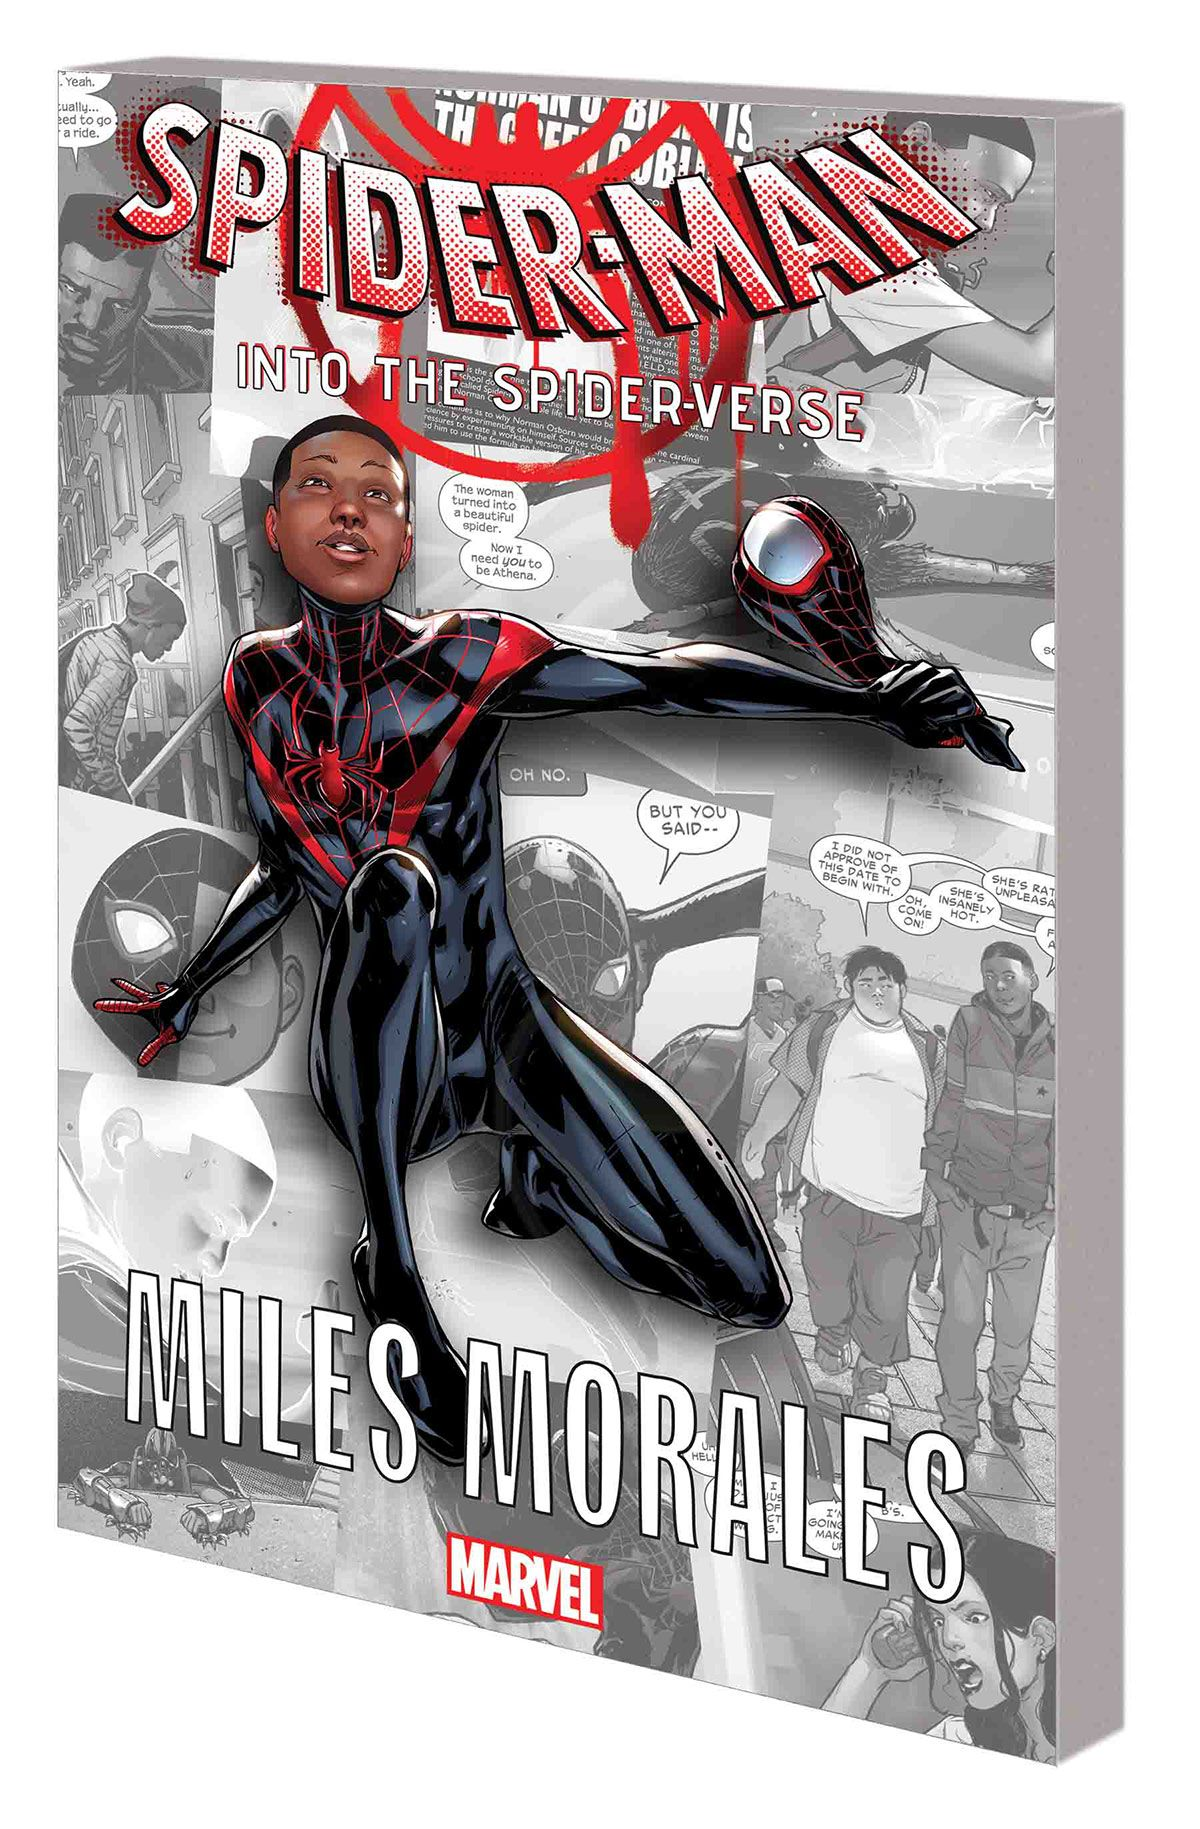 SPIDER-MAN: INTO THE SPIDER-VERSE — MILES MORALES GN-TPB